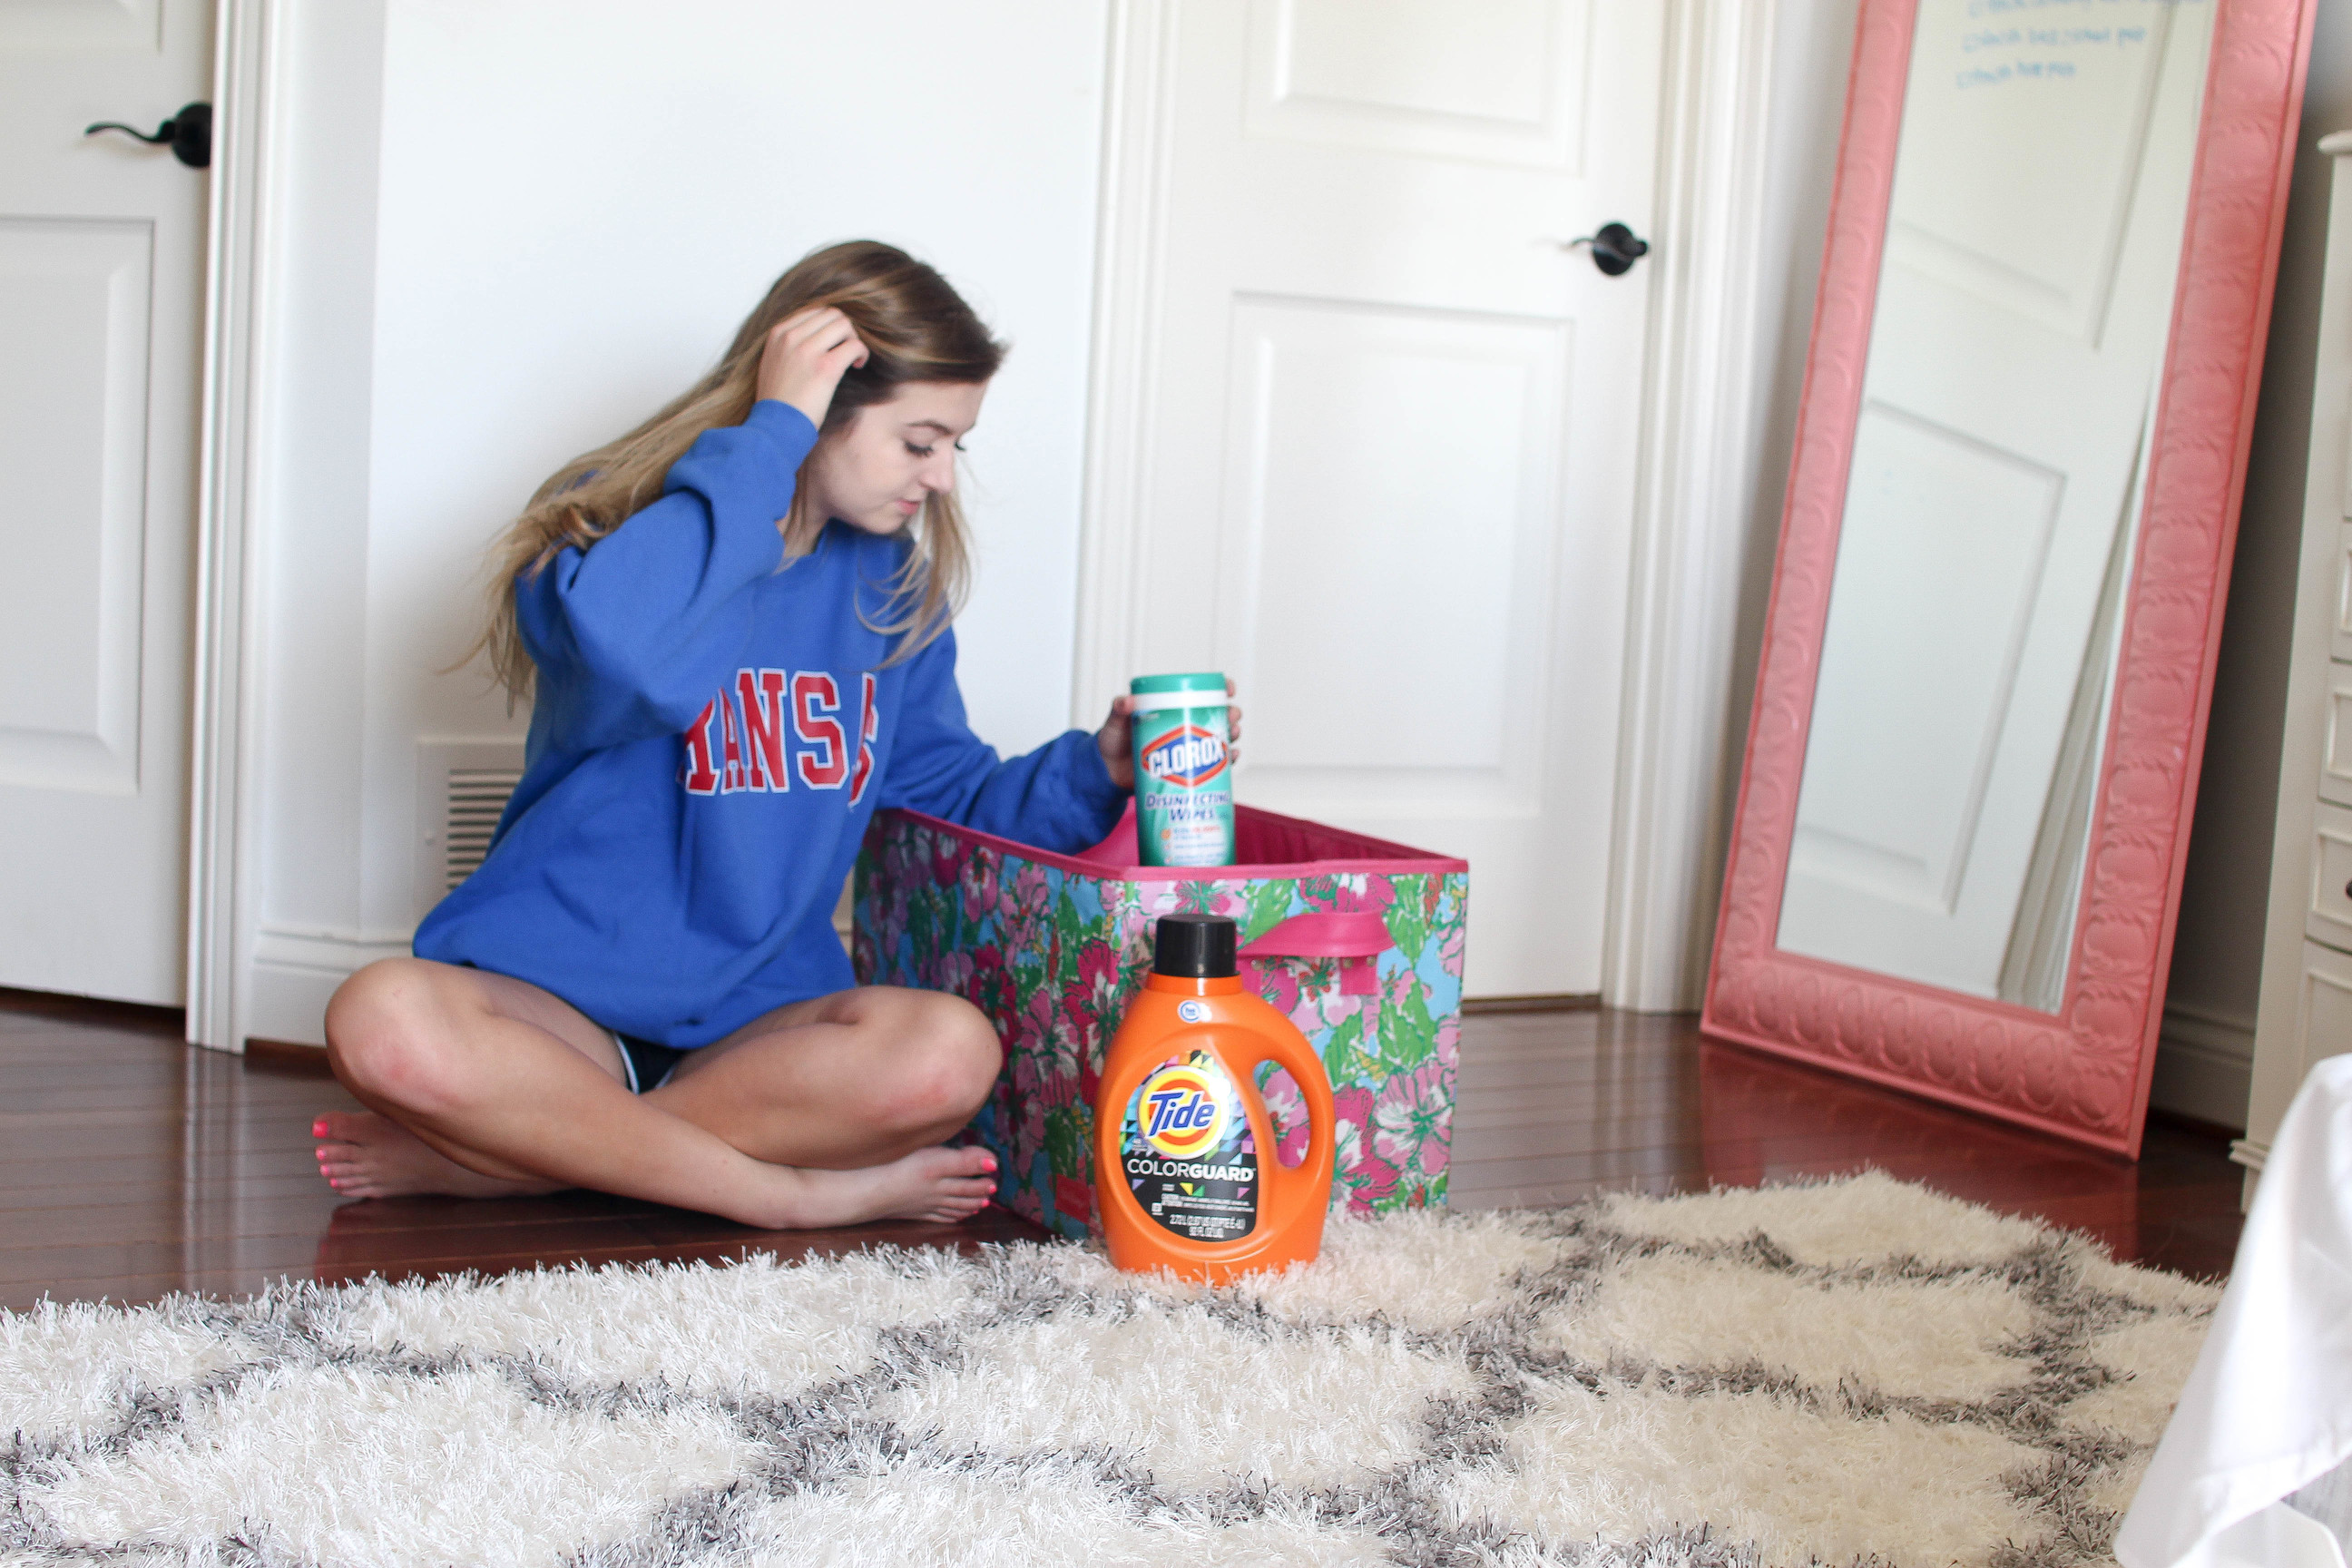 ULTIMATE College Packing List - What you DO and DON'T need! by Lauren Lindmark on Daily Dose of Charm